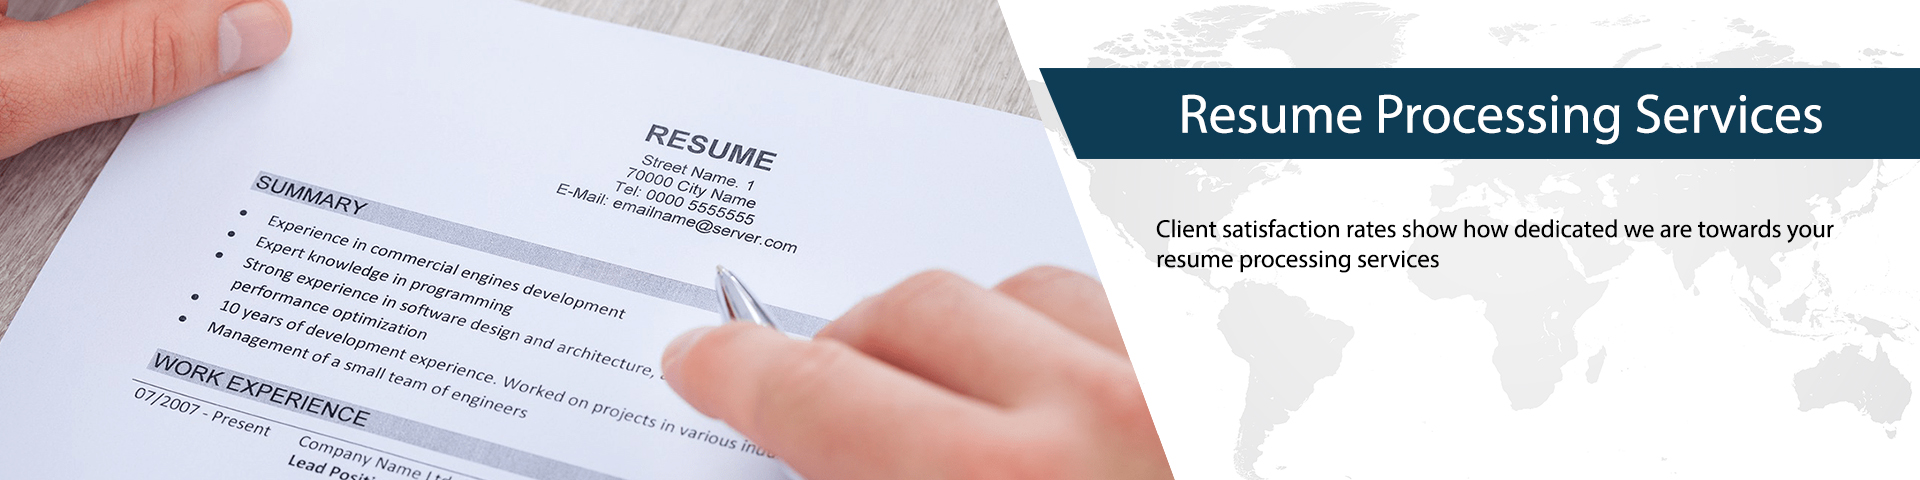 Resume Processing Services